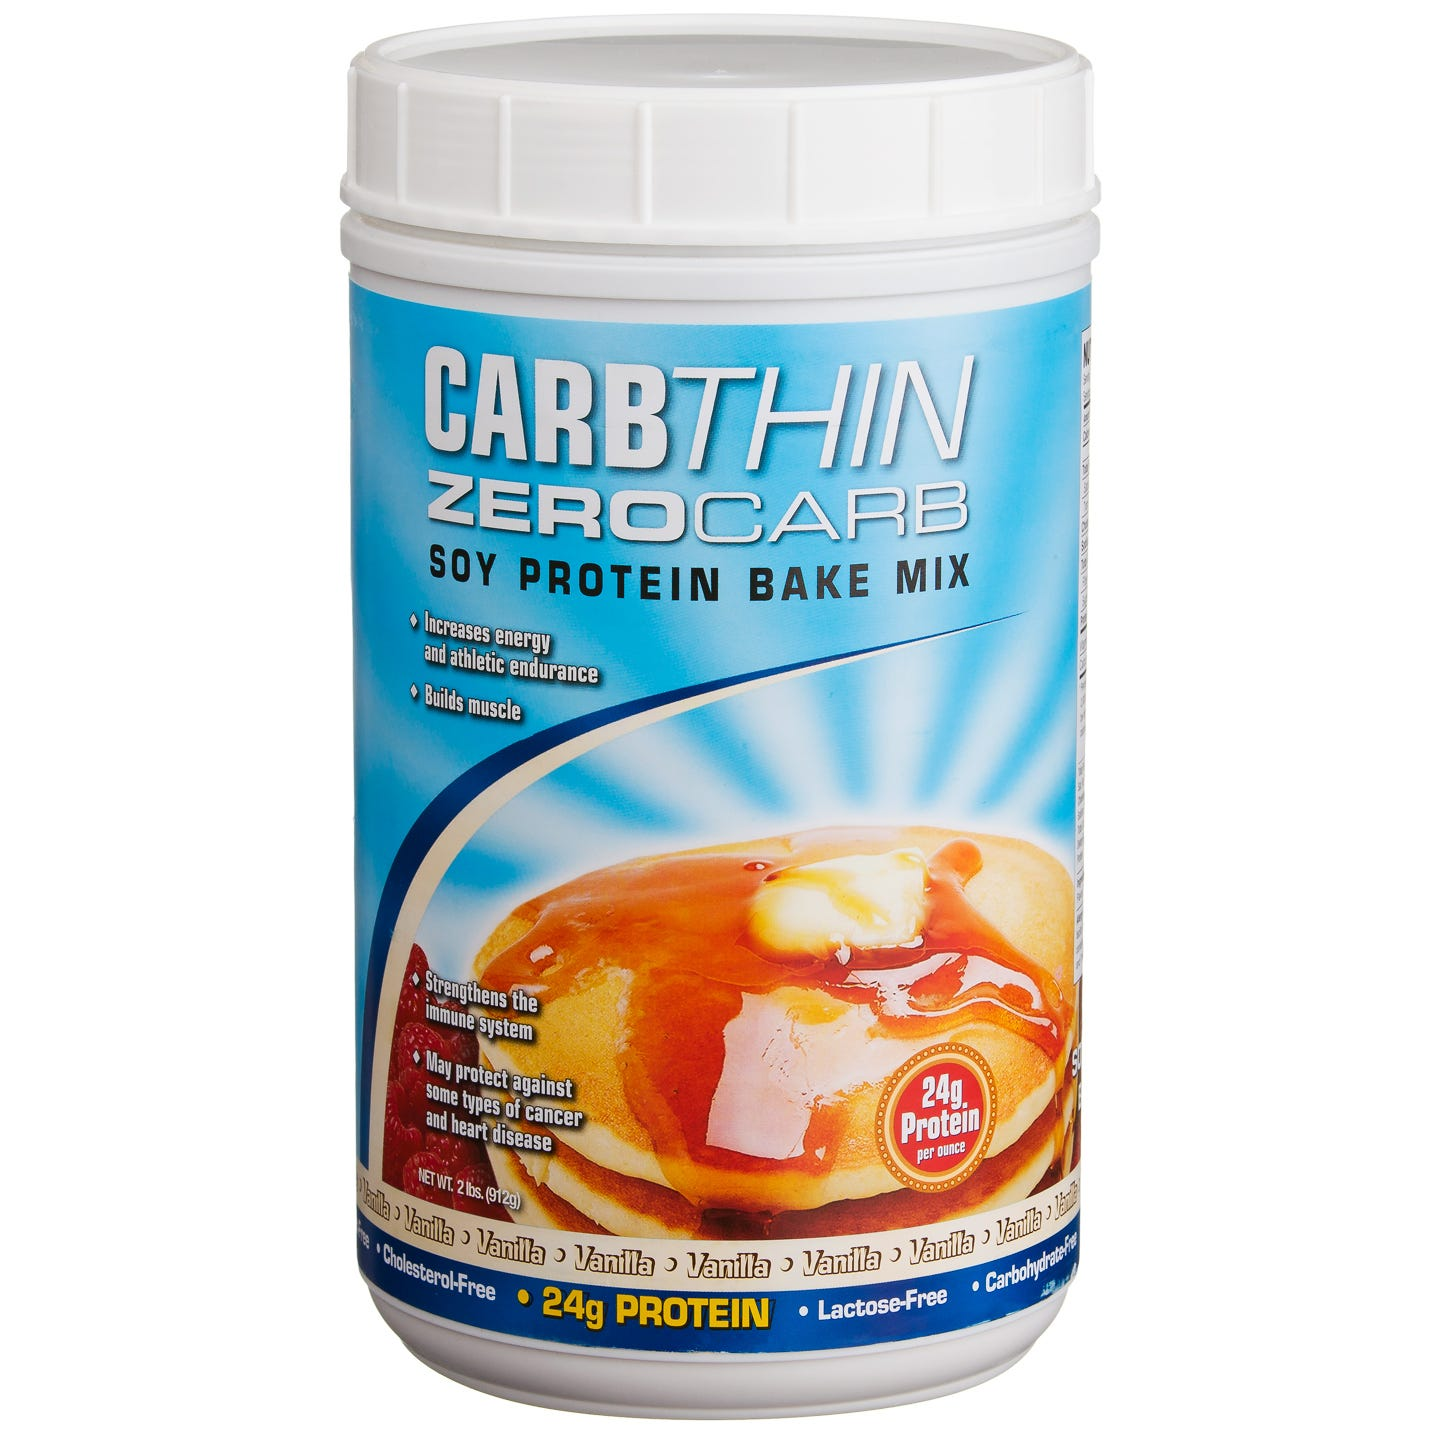 CarbThin Zero Carb Soy Protein Bake Mix - Vanilla